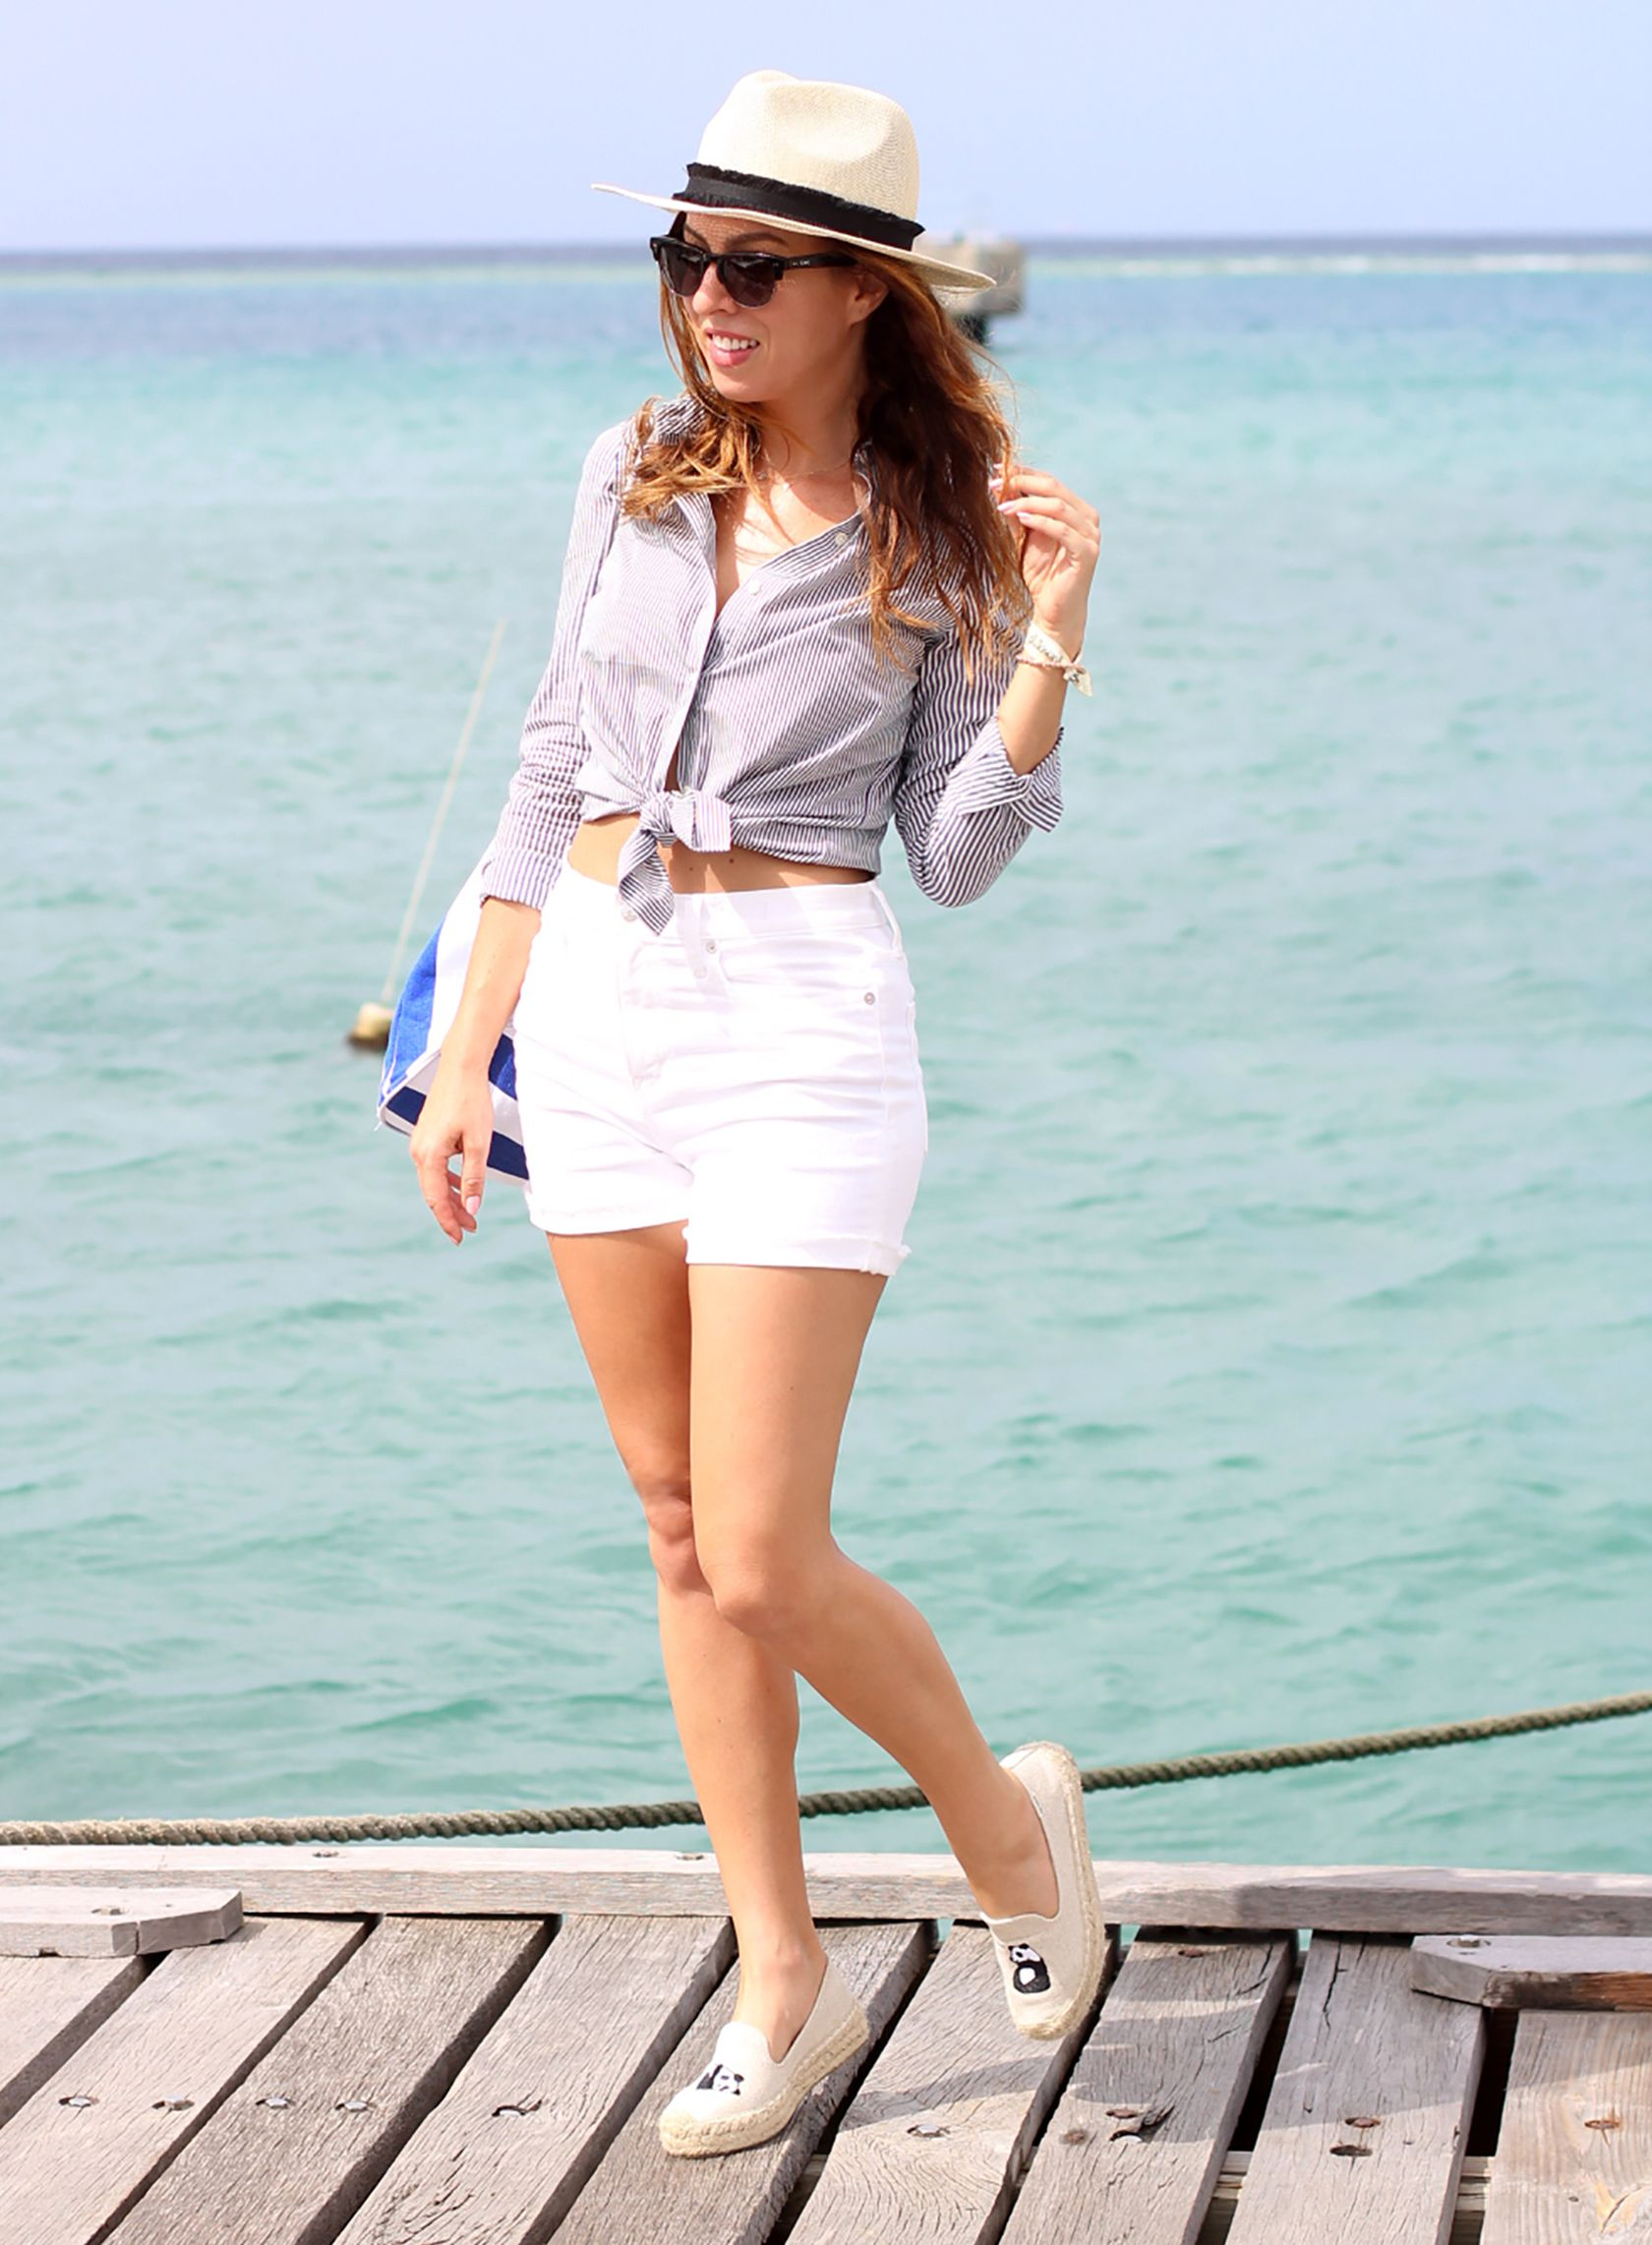 80128af2d1e Sydne Style shows fourth of july outfit ideas for a boat party